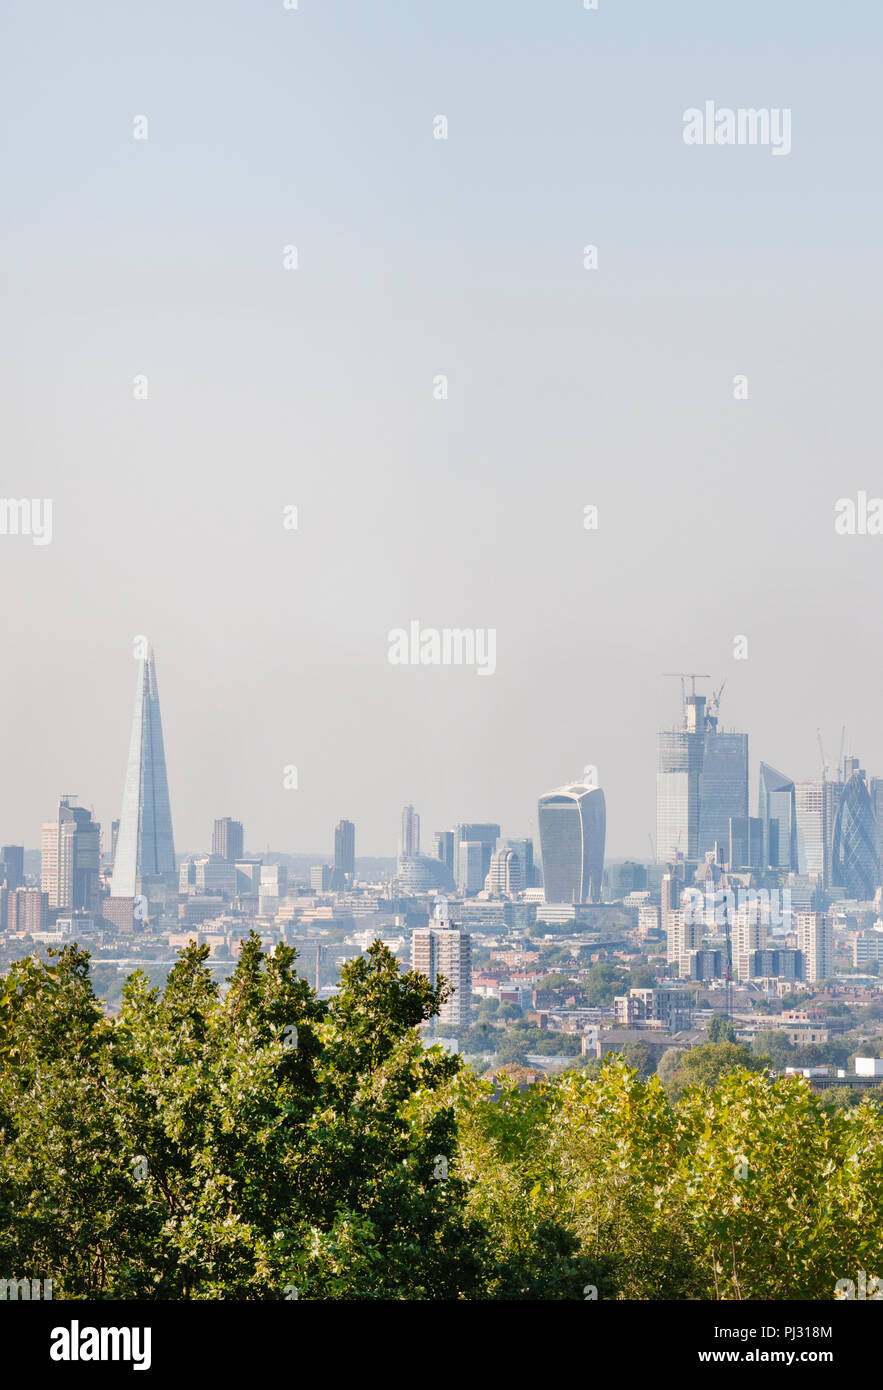 View of City of London skyline from One Tree Hill, Honor Oak, Southwark, London, United Kingdom Stock Photo